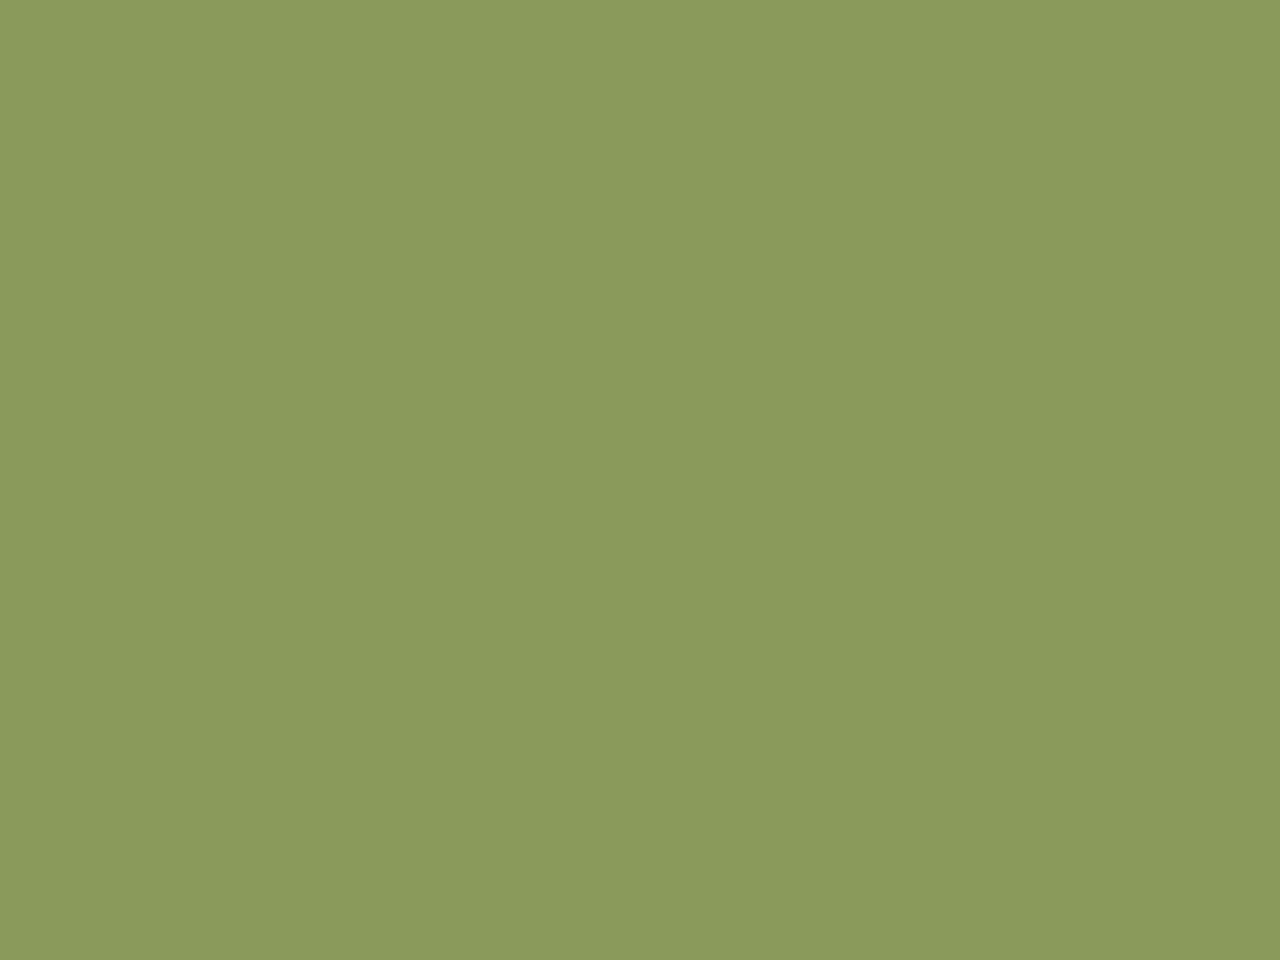 1280x960 Moss Green Solid Color Background